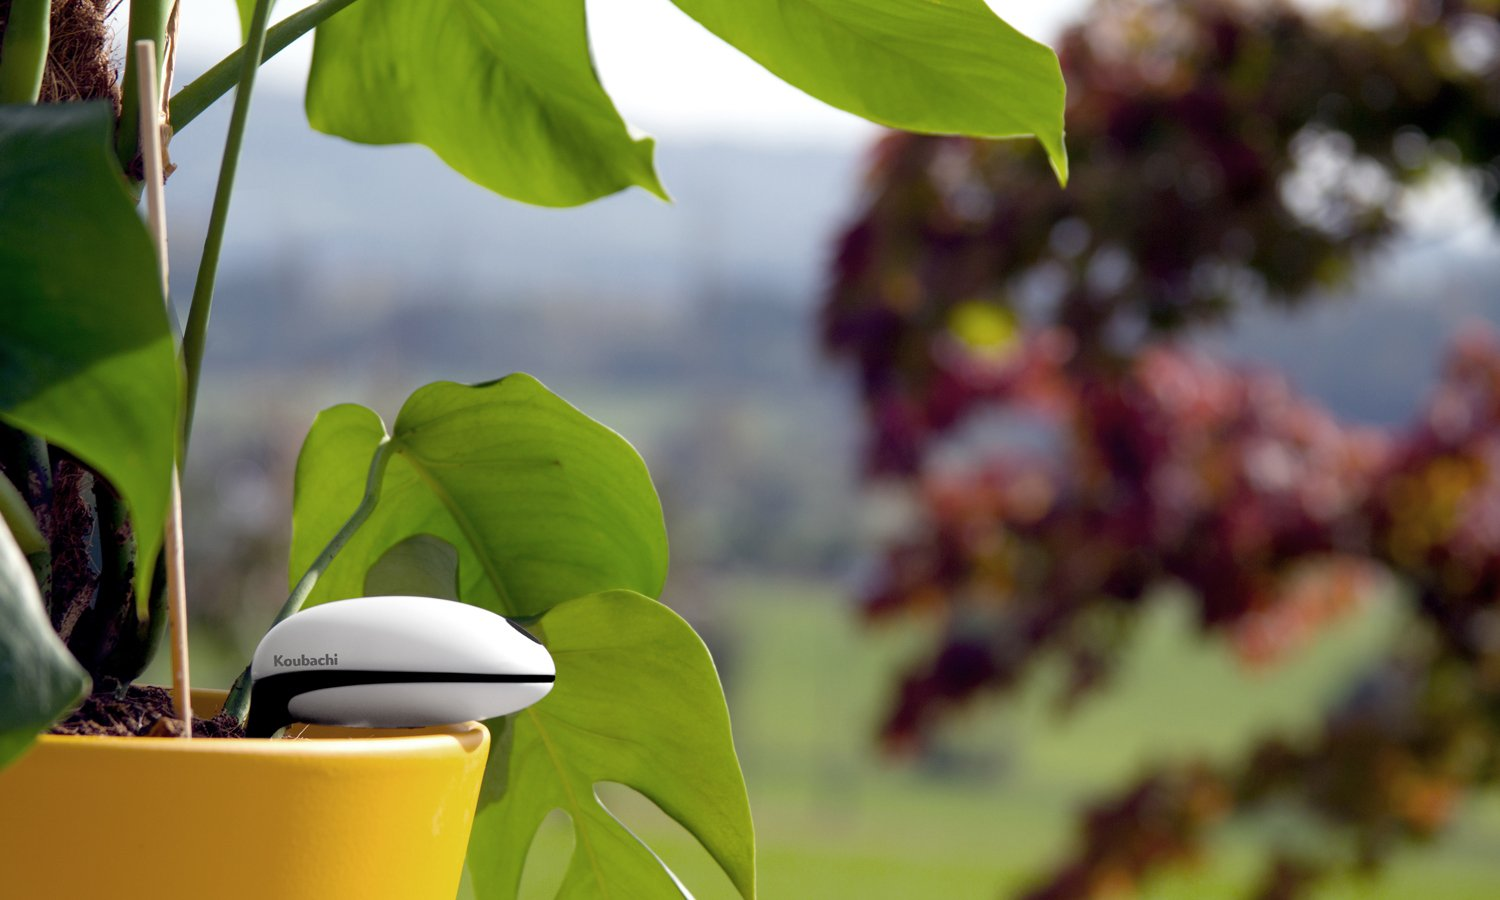 Diy our world will be all dc power - Monitor your indoor plants with the koubashi wi fi sensor ...